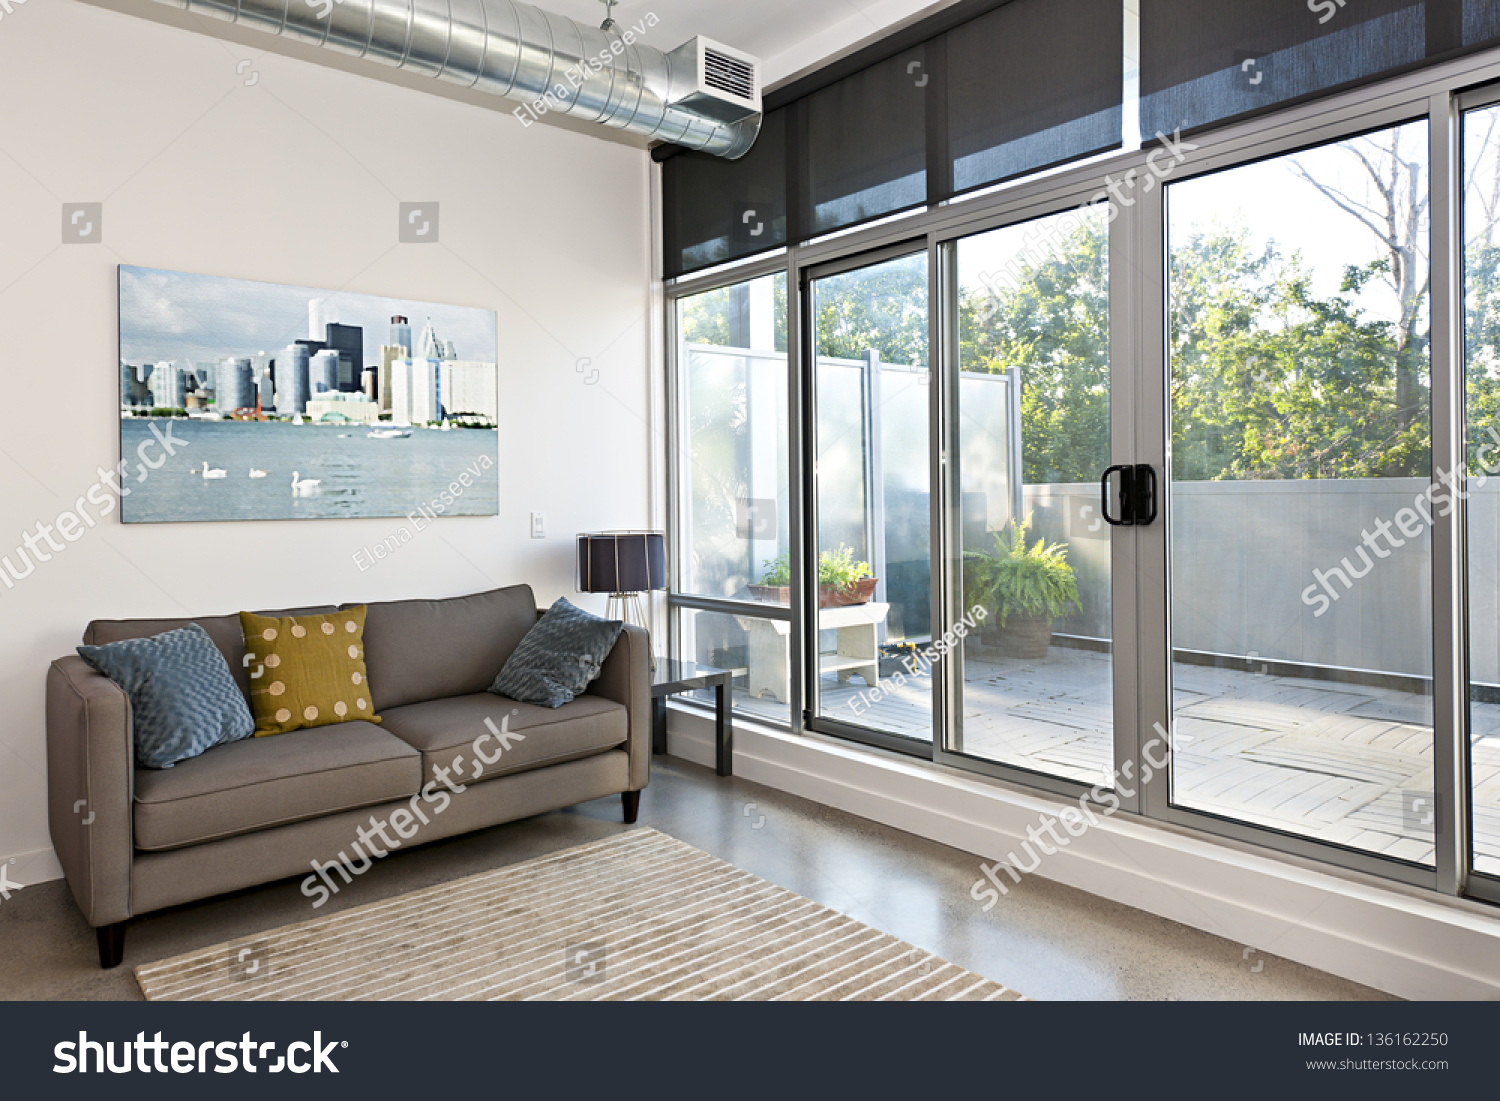 Living room with sliding glass door to balcony. Living Room Sliding Glass Door Balcony Stock Photo 136162250